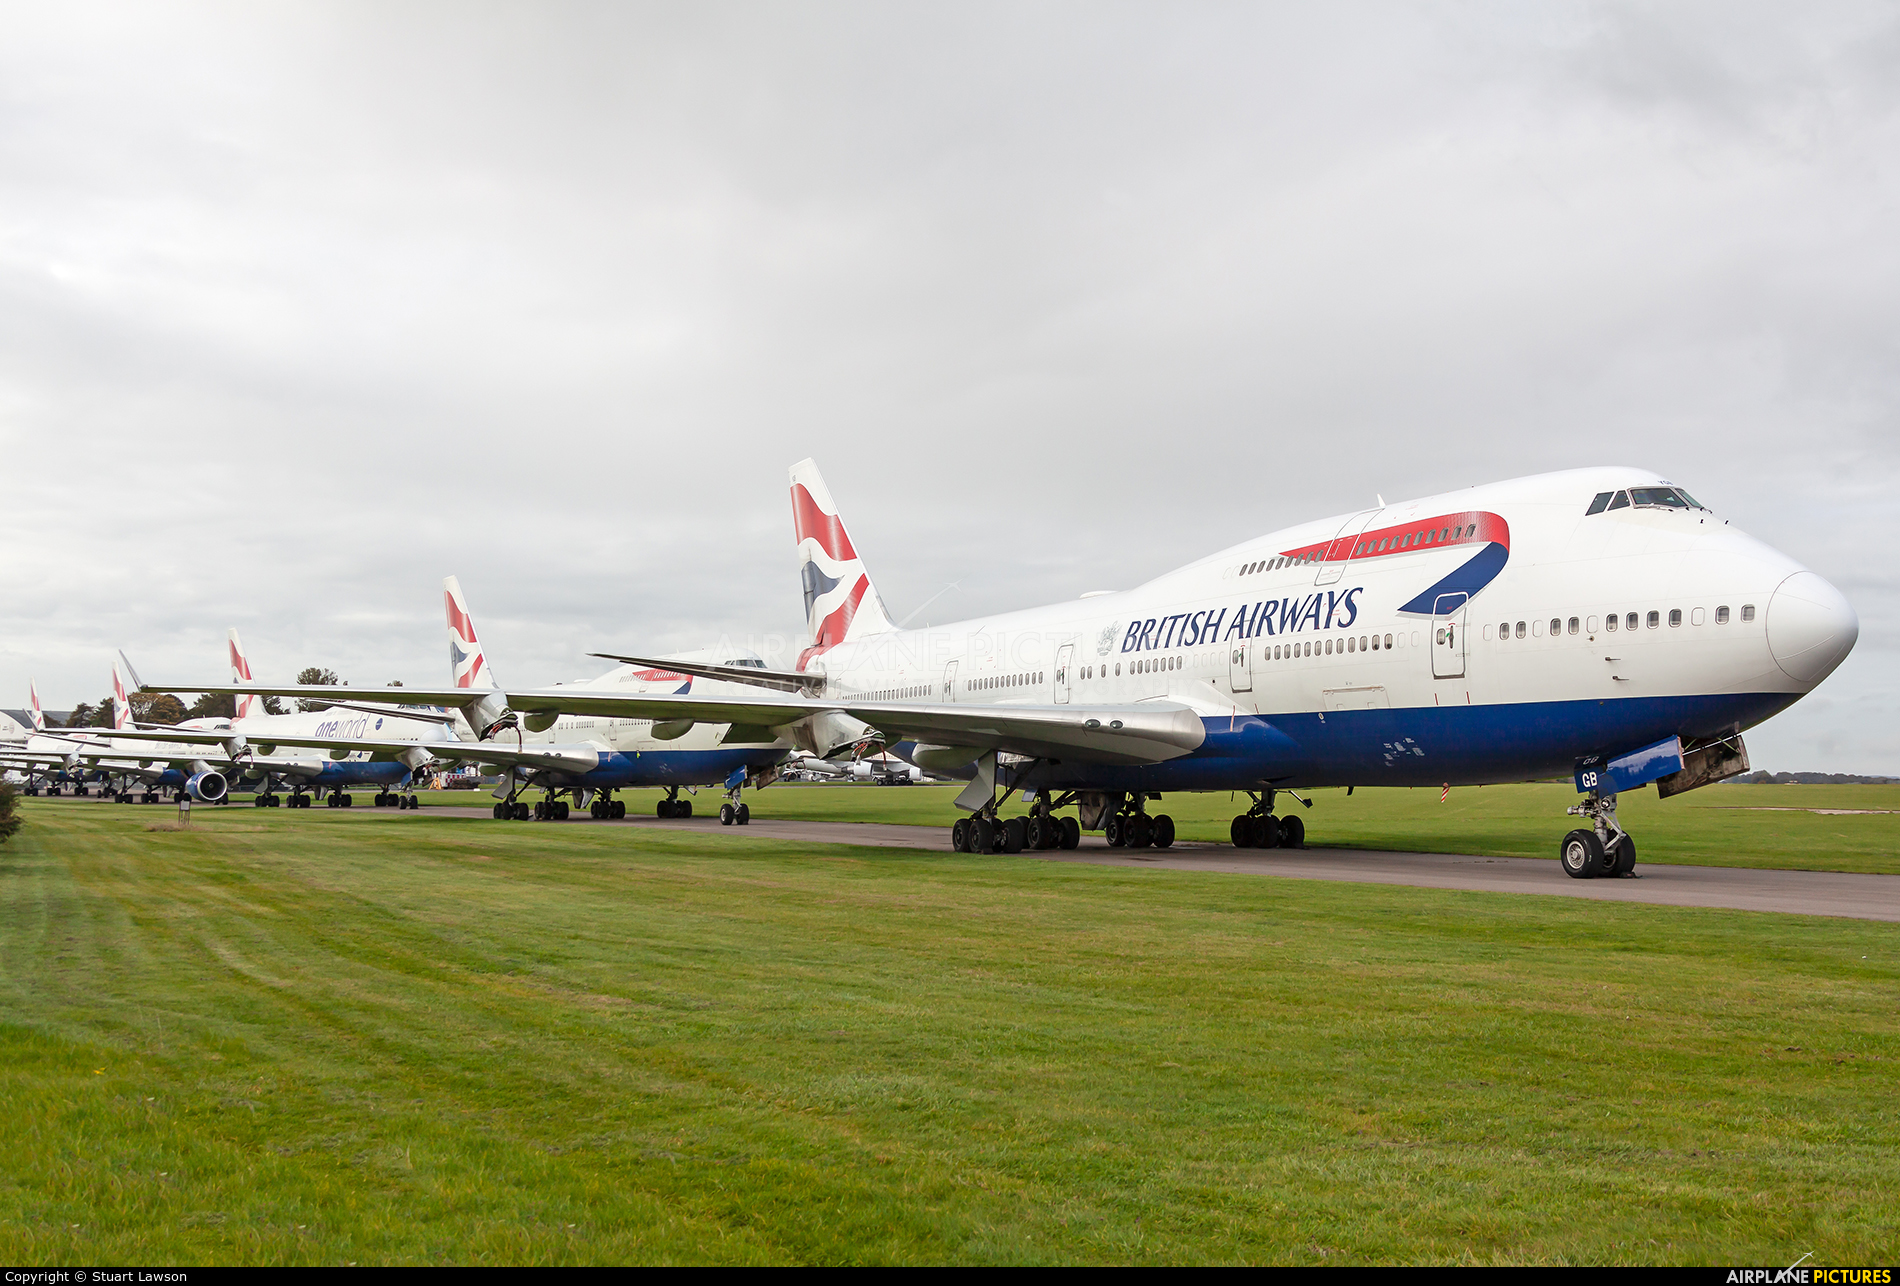 British Airways G-BYGB aircraft at Kemble